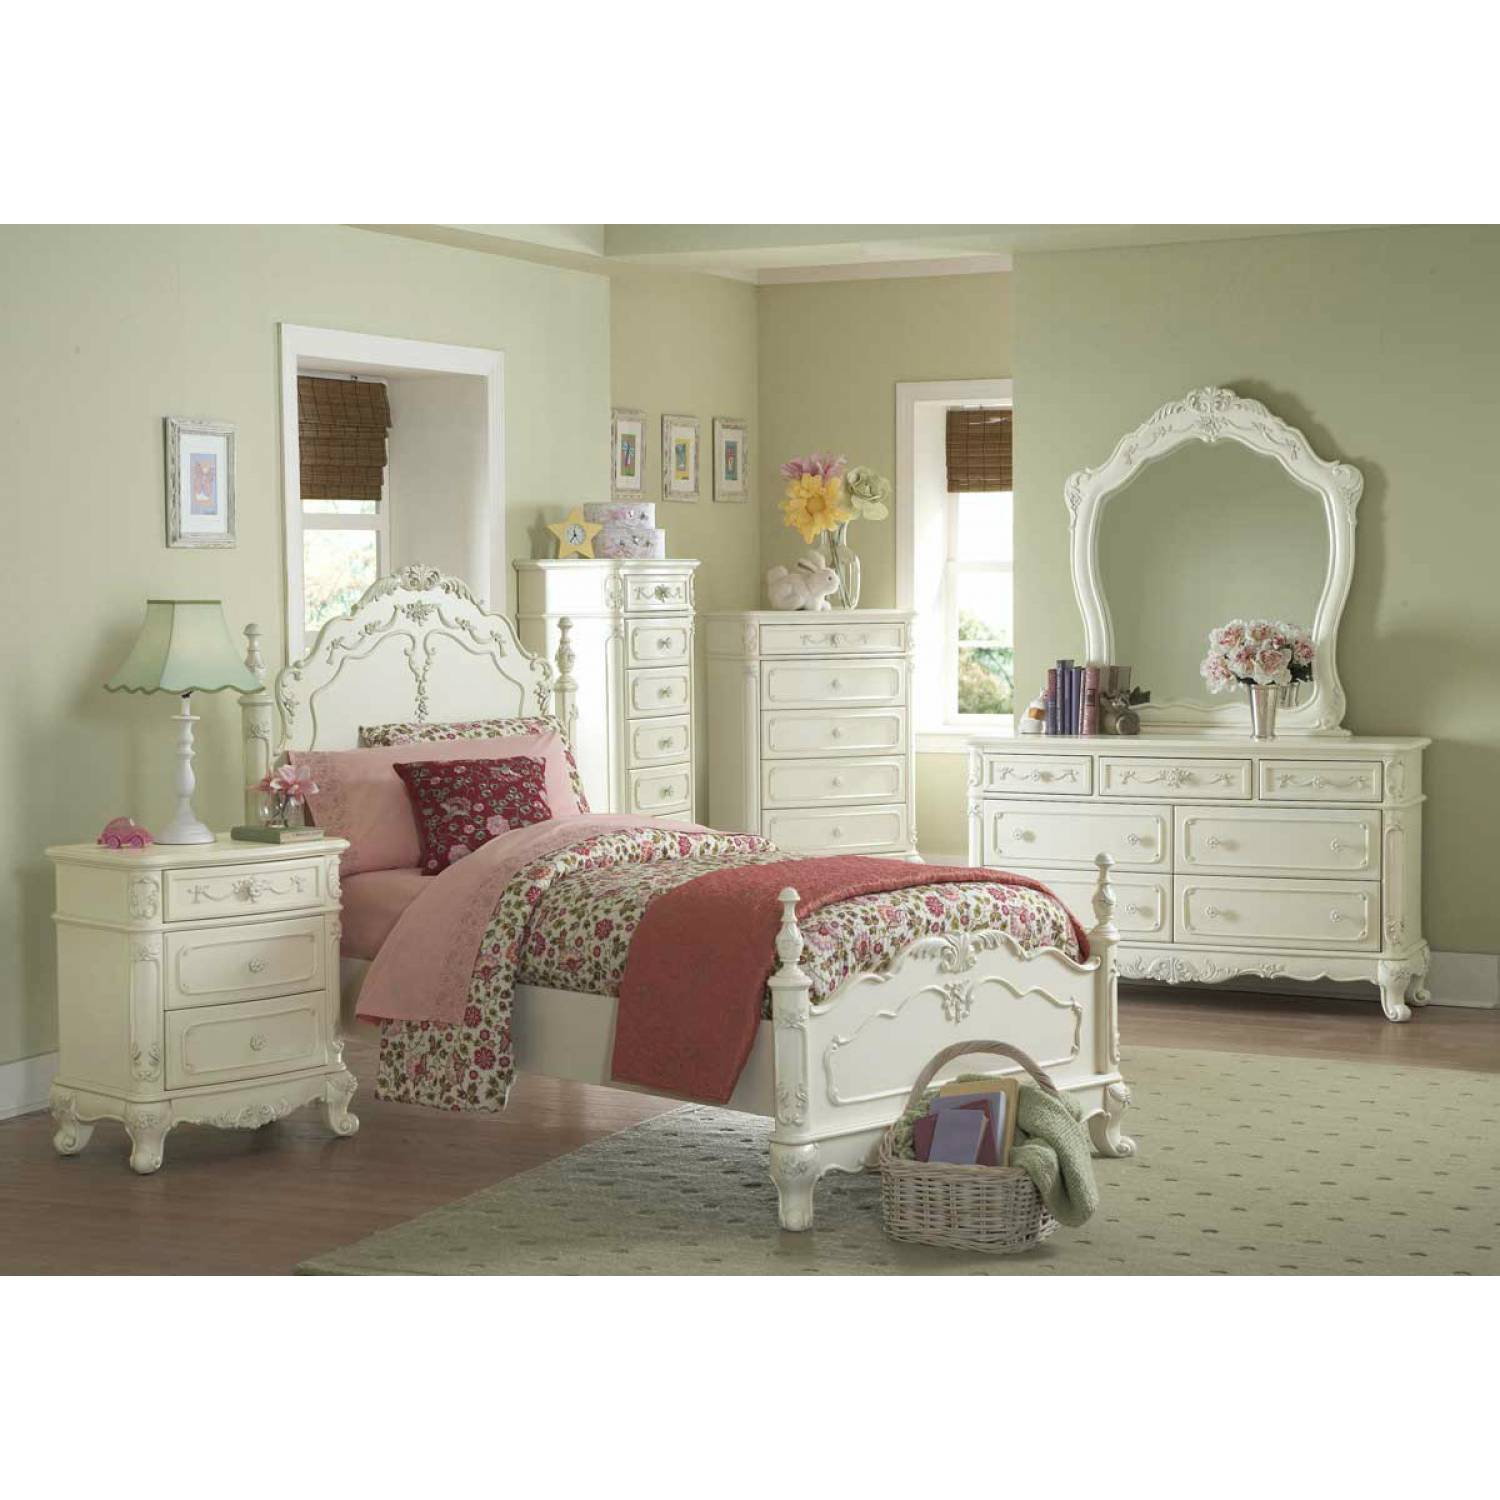 Cinderella Bedroom Collection 5pc Set(TB+NS+DR+MR+CH